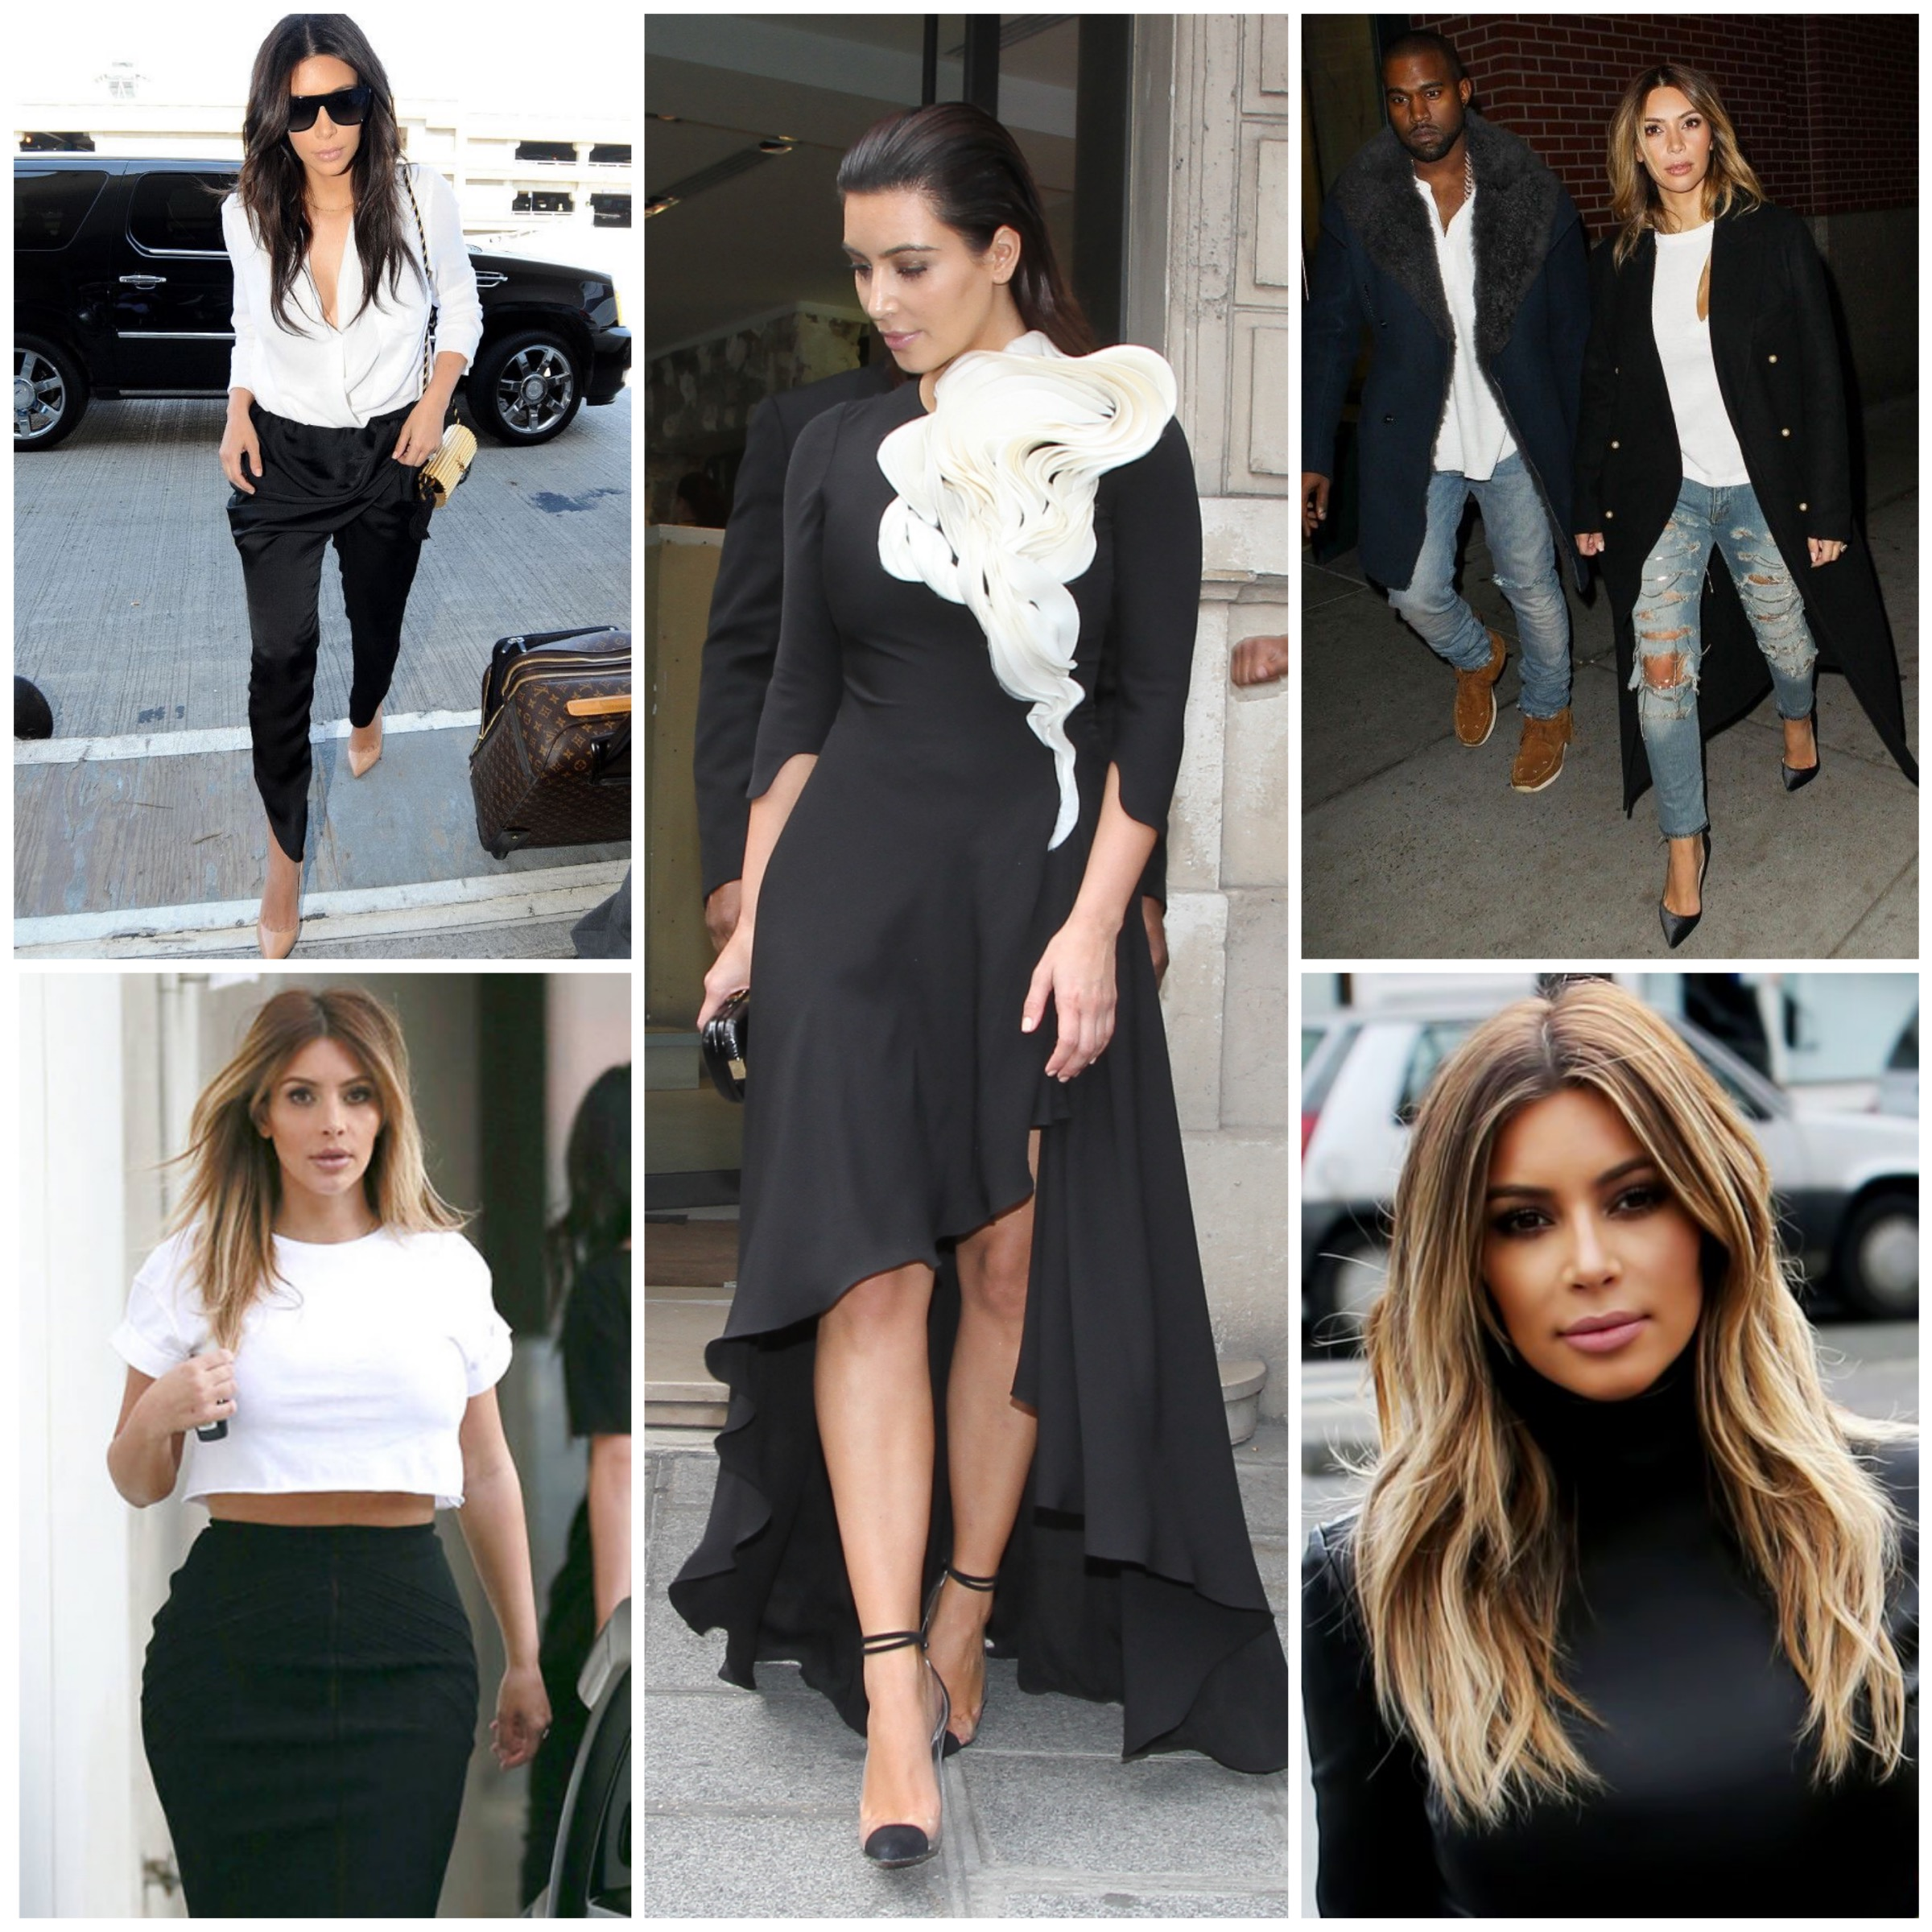 Kim's style after Kanye - Classy in Black & White